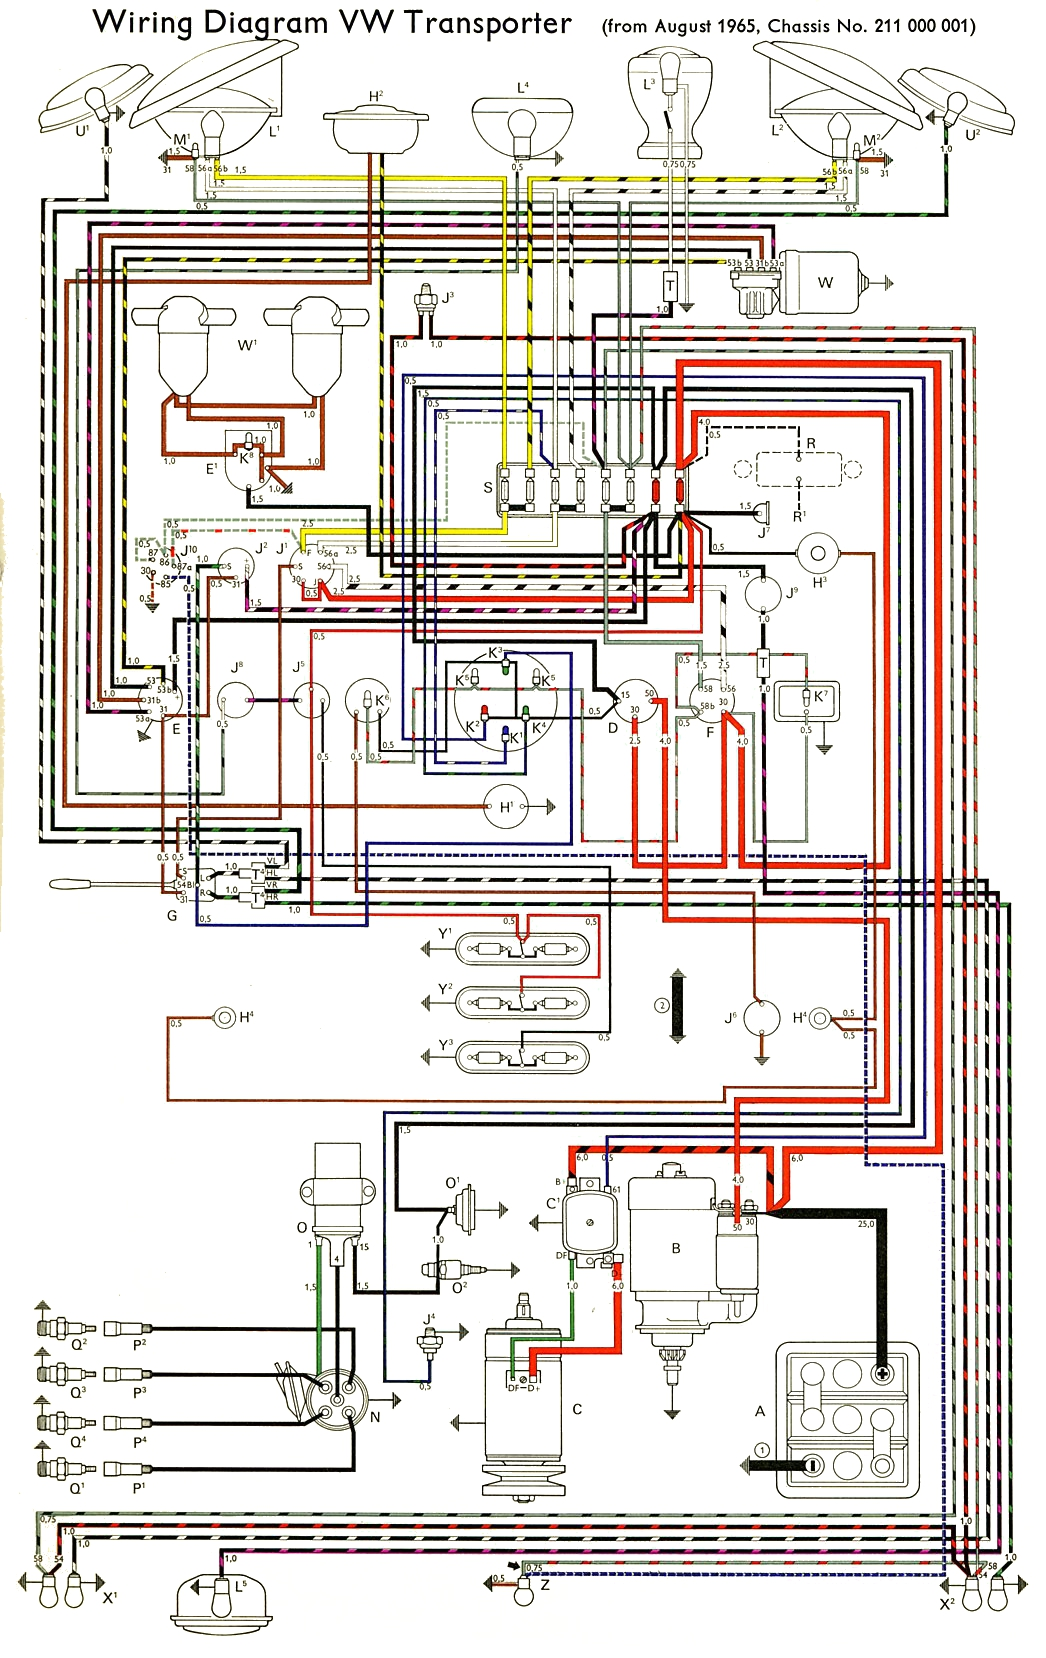 bus_66 electrical wiring diagrams beetle 1971 electrical wiring vw bus samba wiring diagram at bayanpartner.co